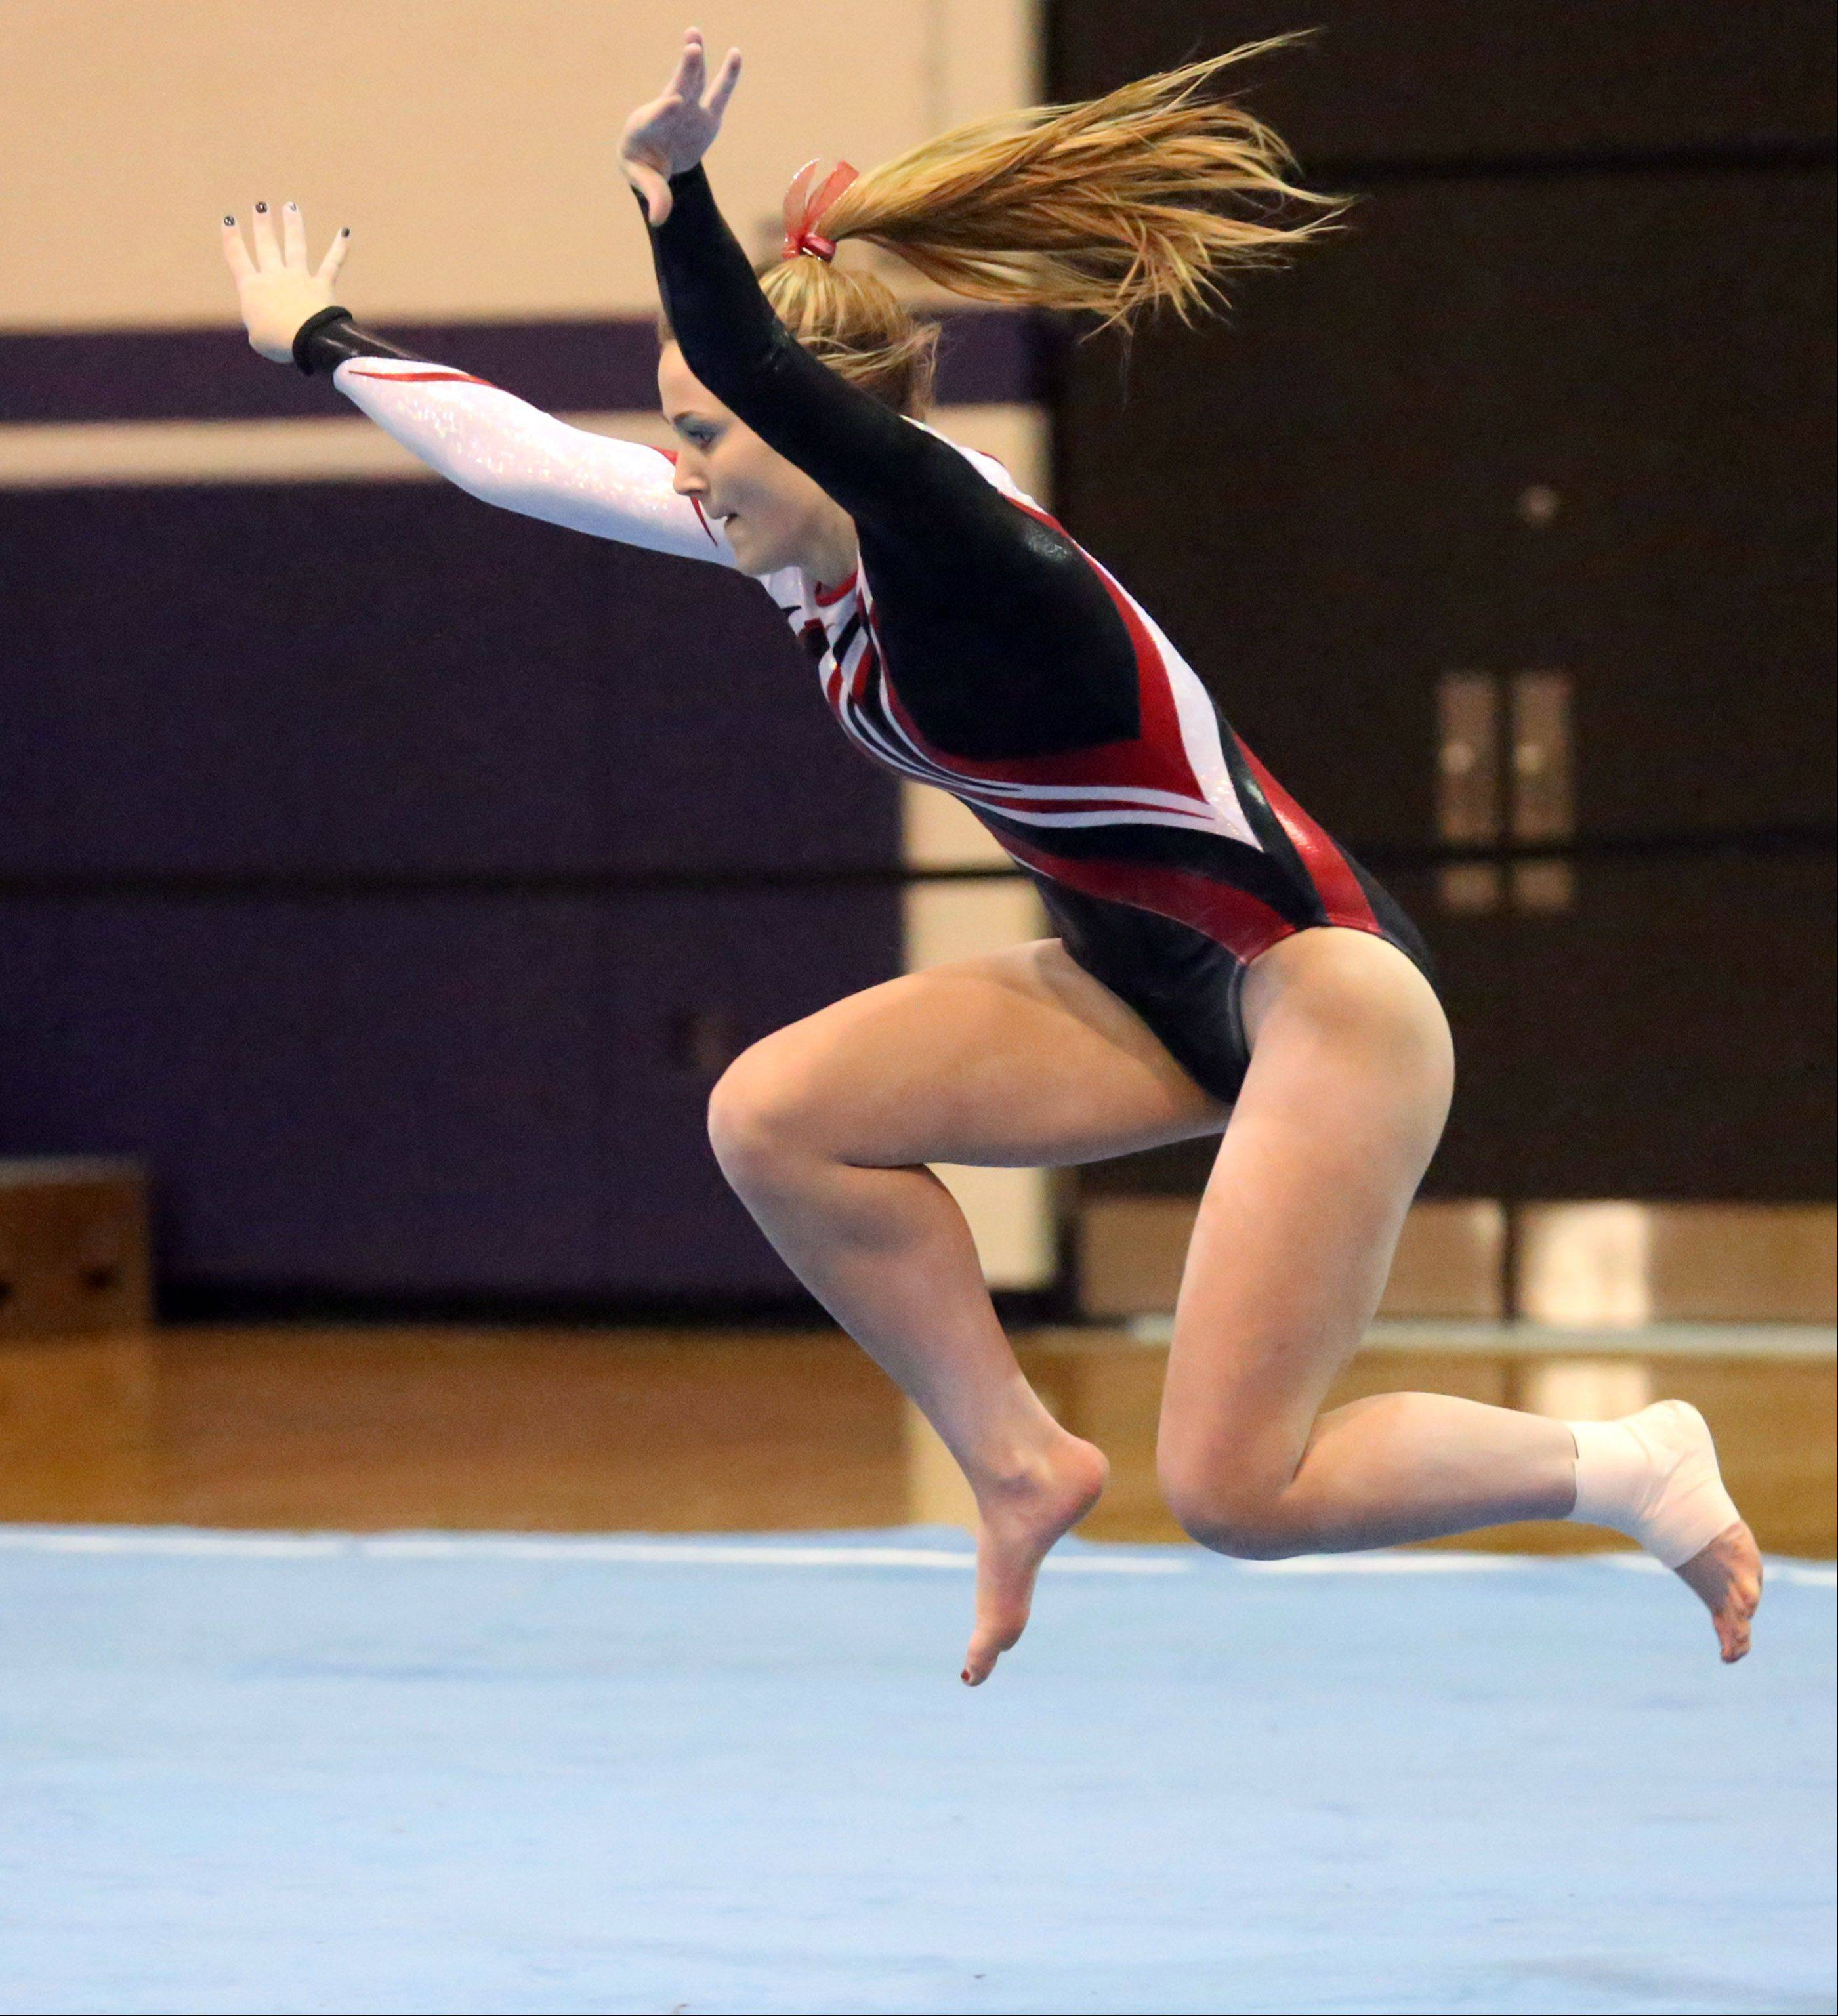 Barrington's Tara Schuman competes on the floor at the Rolling Meadows Al Galatte Invitational on Saturday.